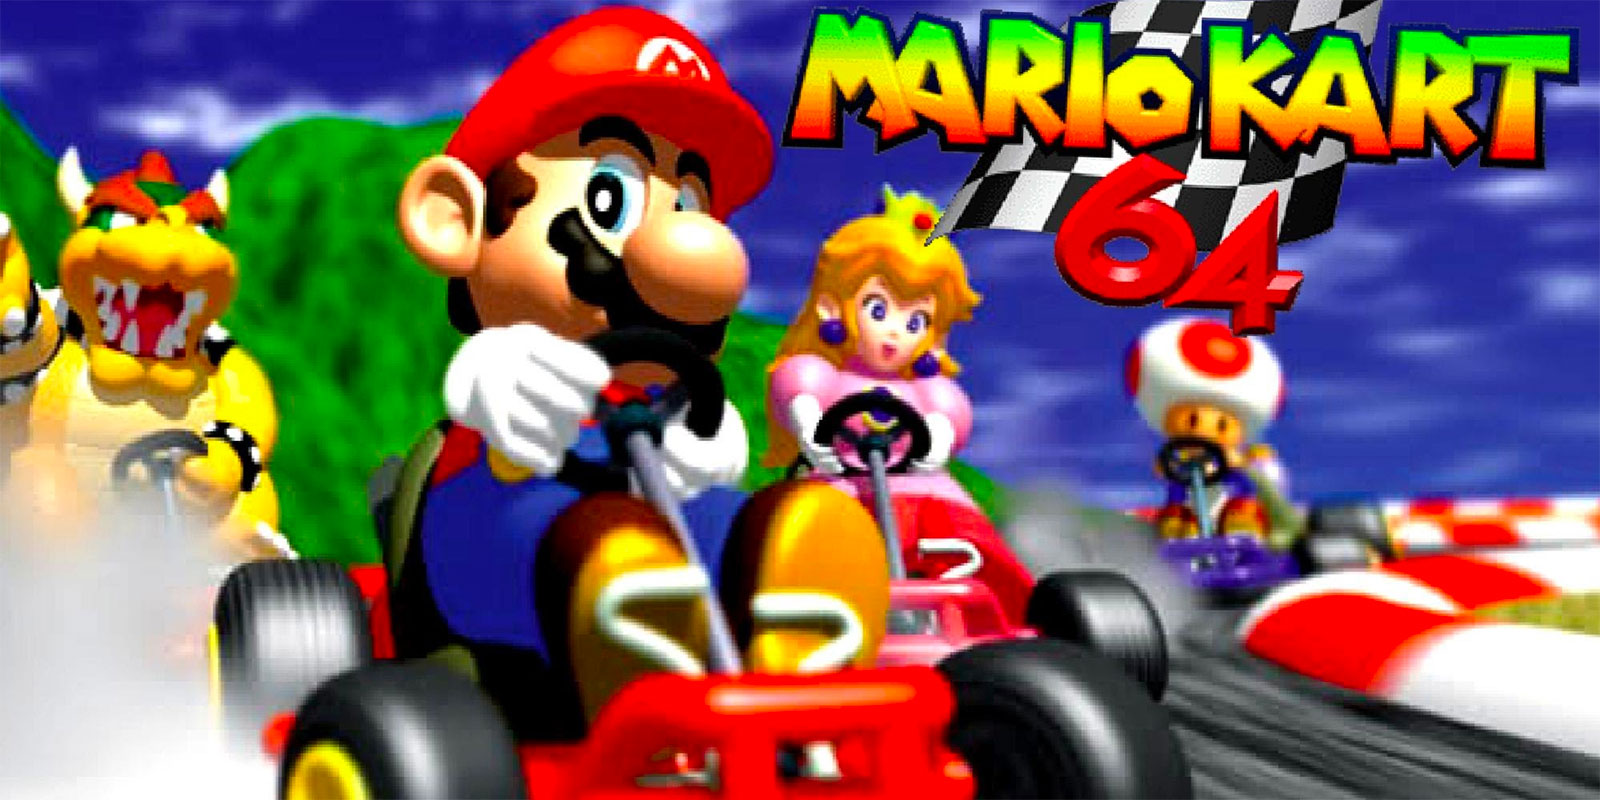 The 11 Songs From Mario Kart 64 Ranked